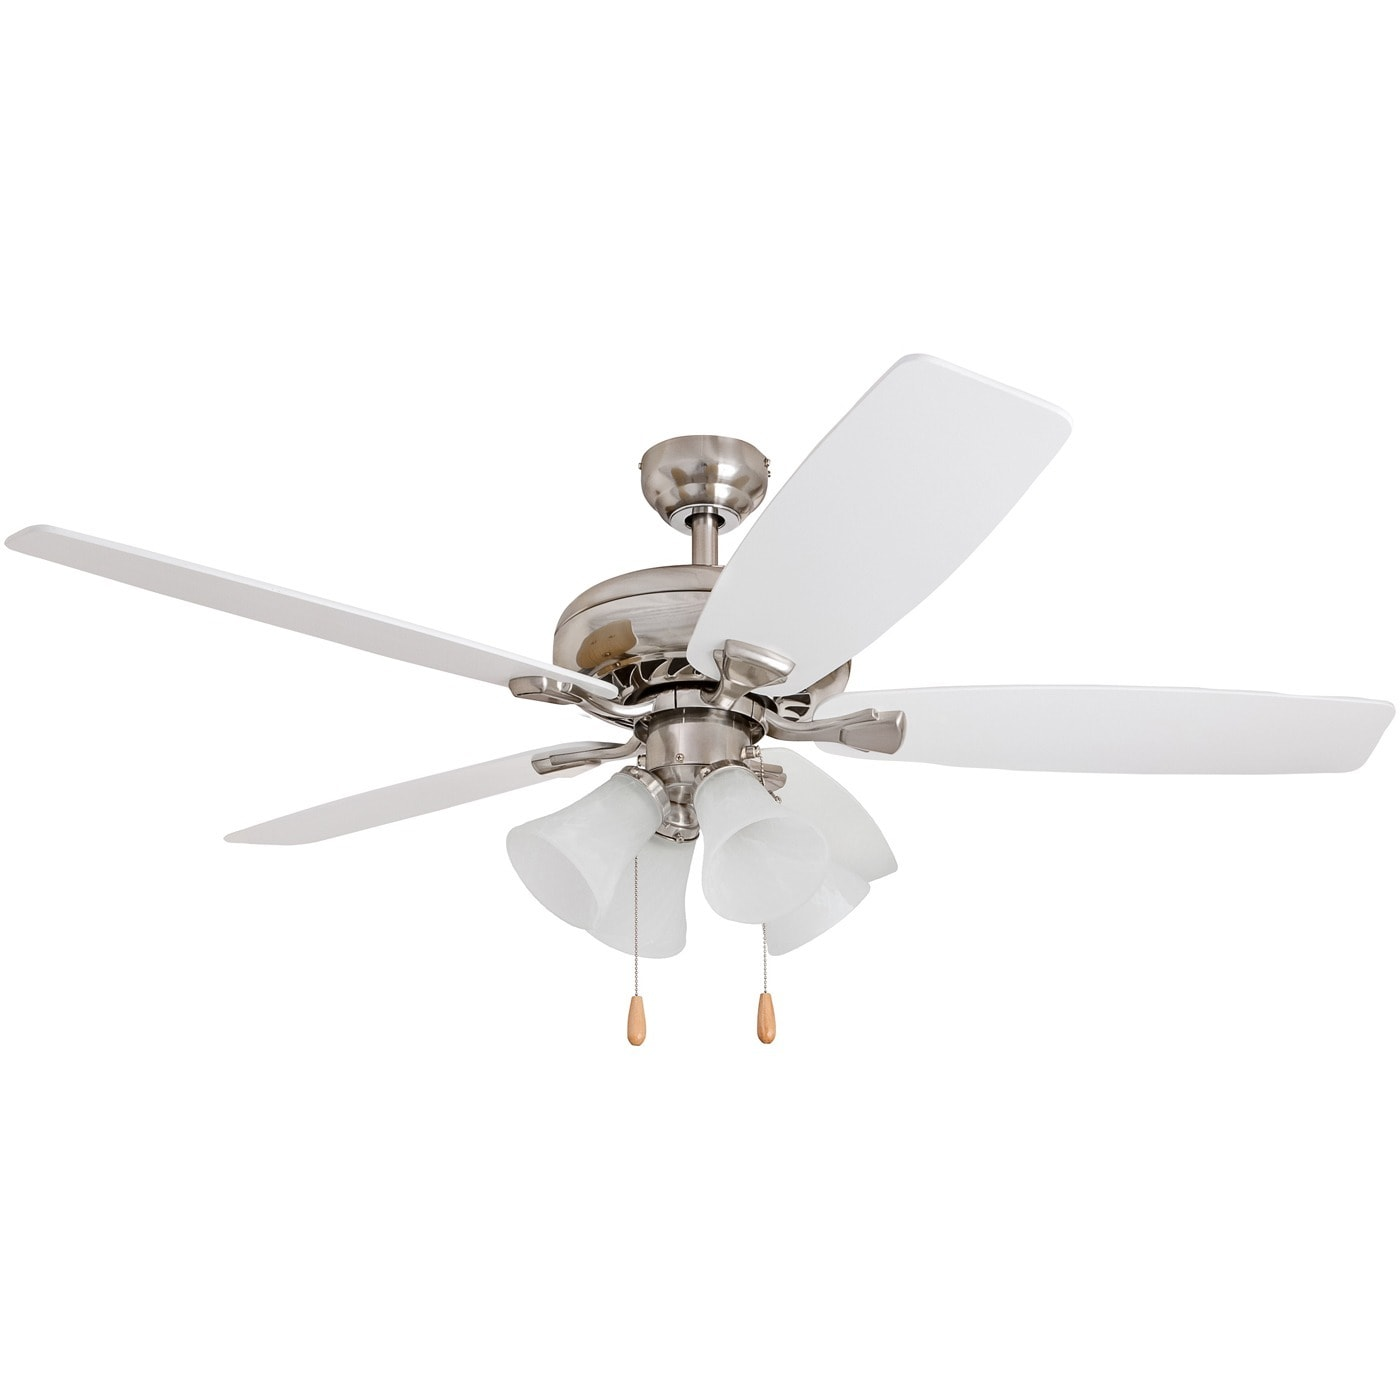 EcoSure 52 inch Narvi Brushed Nickel Fan with White Maple